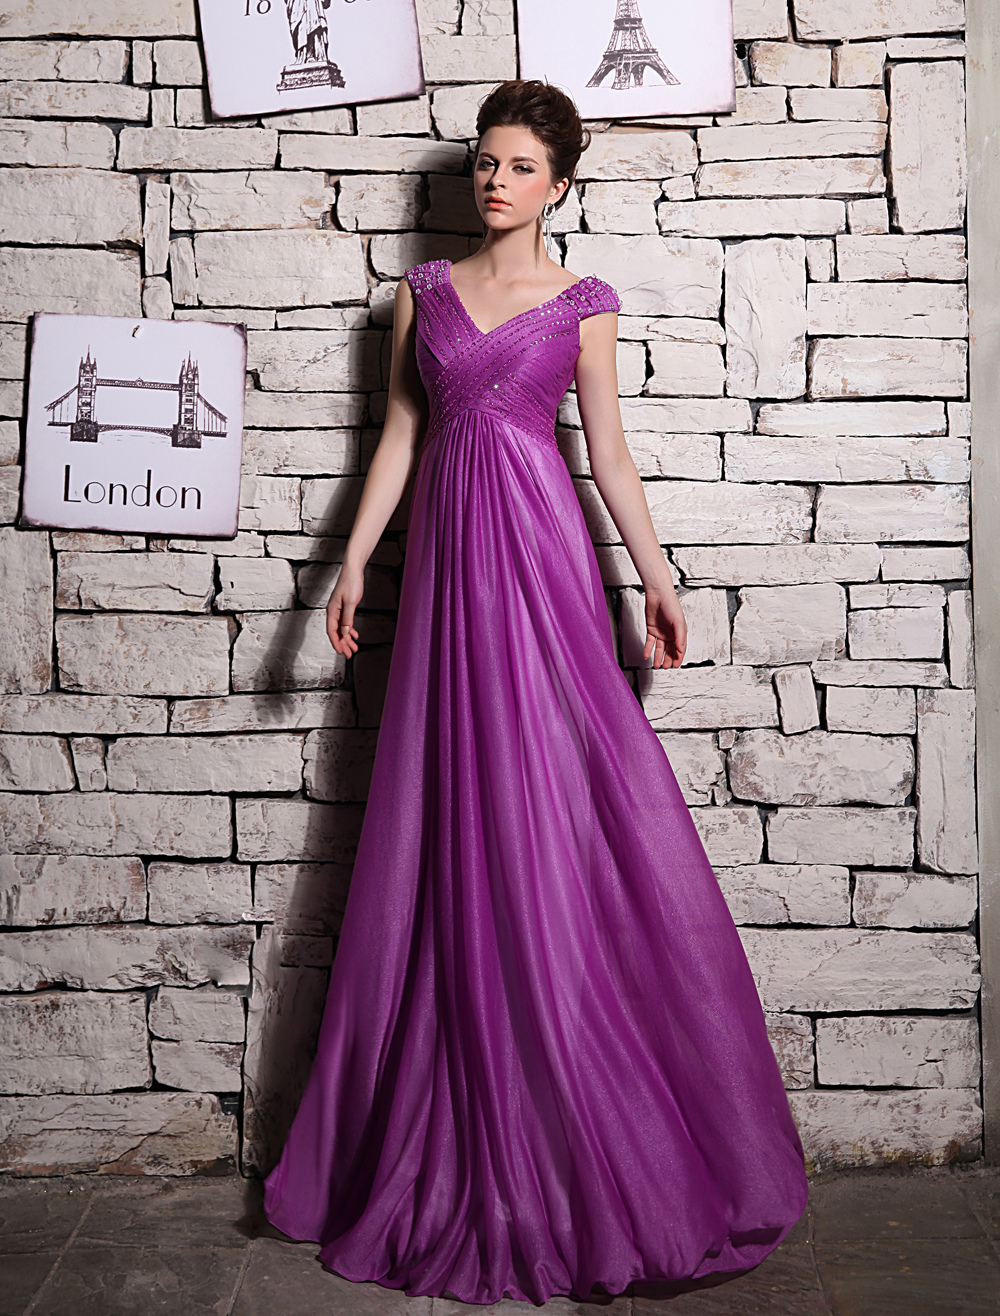 Magenta Evening Dress Elegant Shot-Silk Prom Dress V Neck Beading A Line Sleeveless Party Dress Milanoo